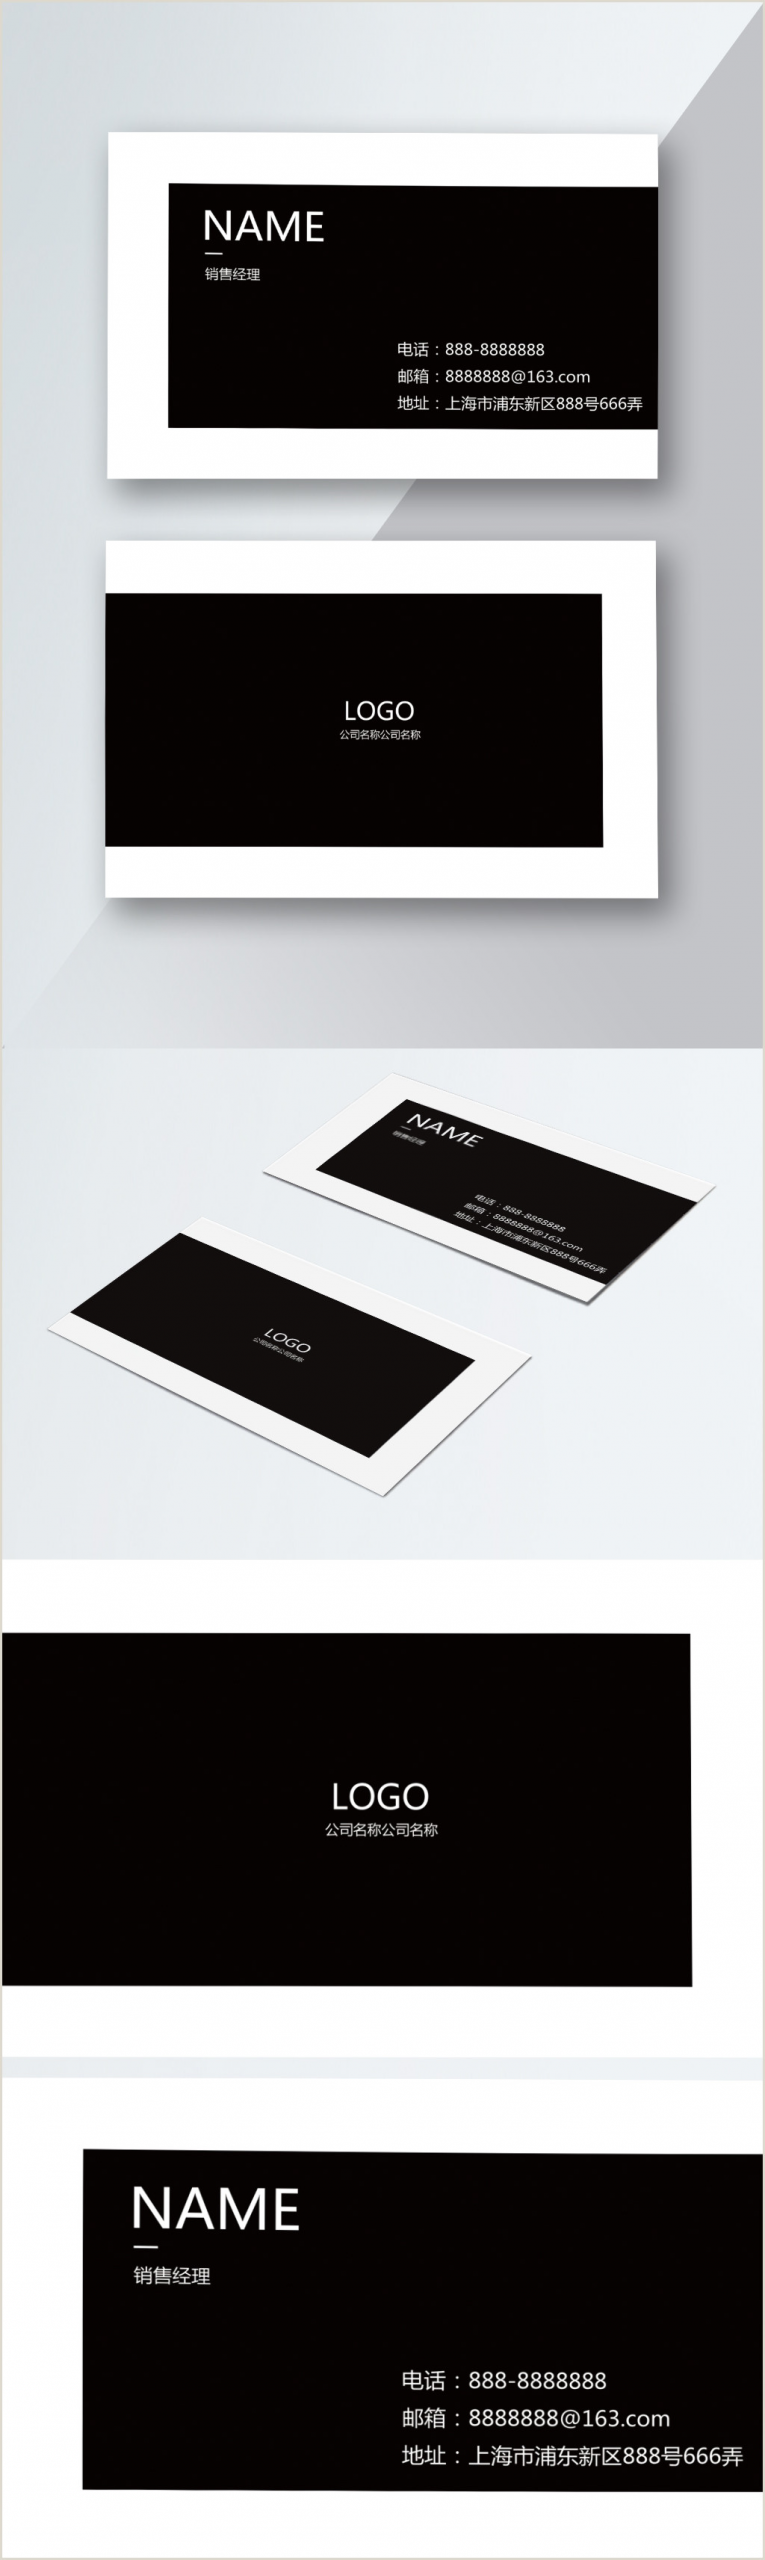 Black And White Business Cards Templates Free Black And White Business Card Template Image Picture Free